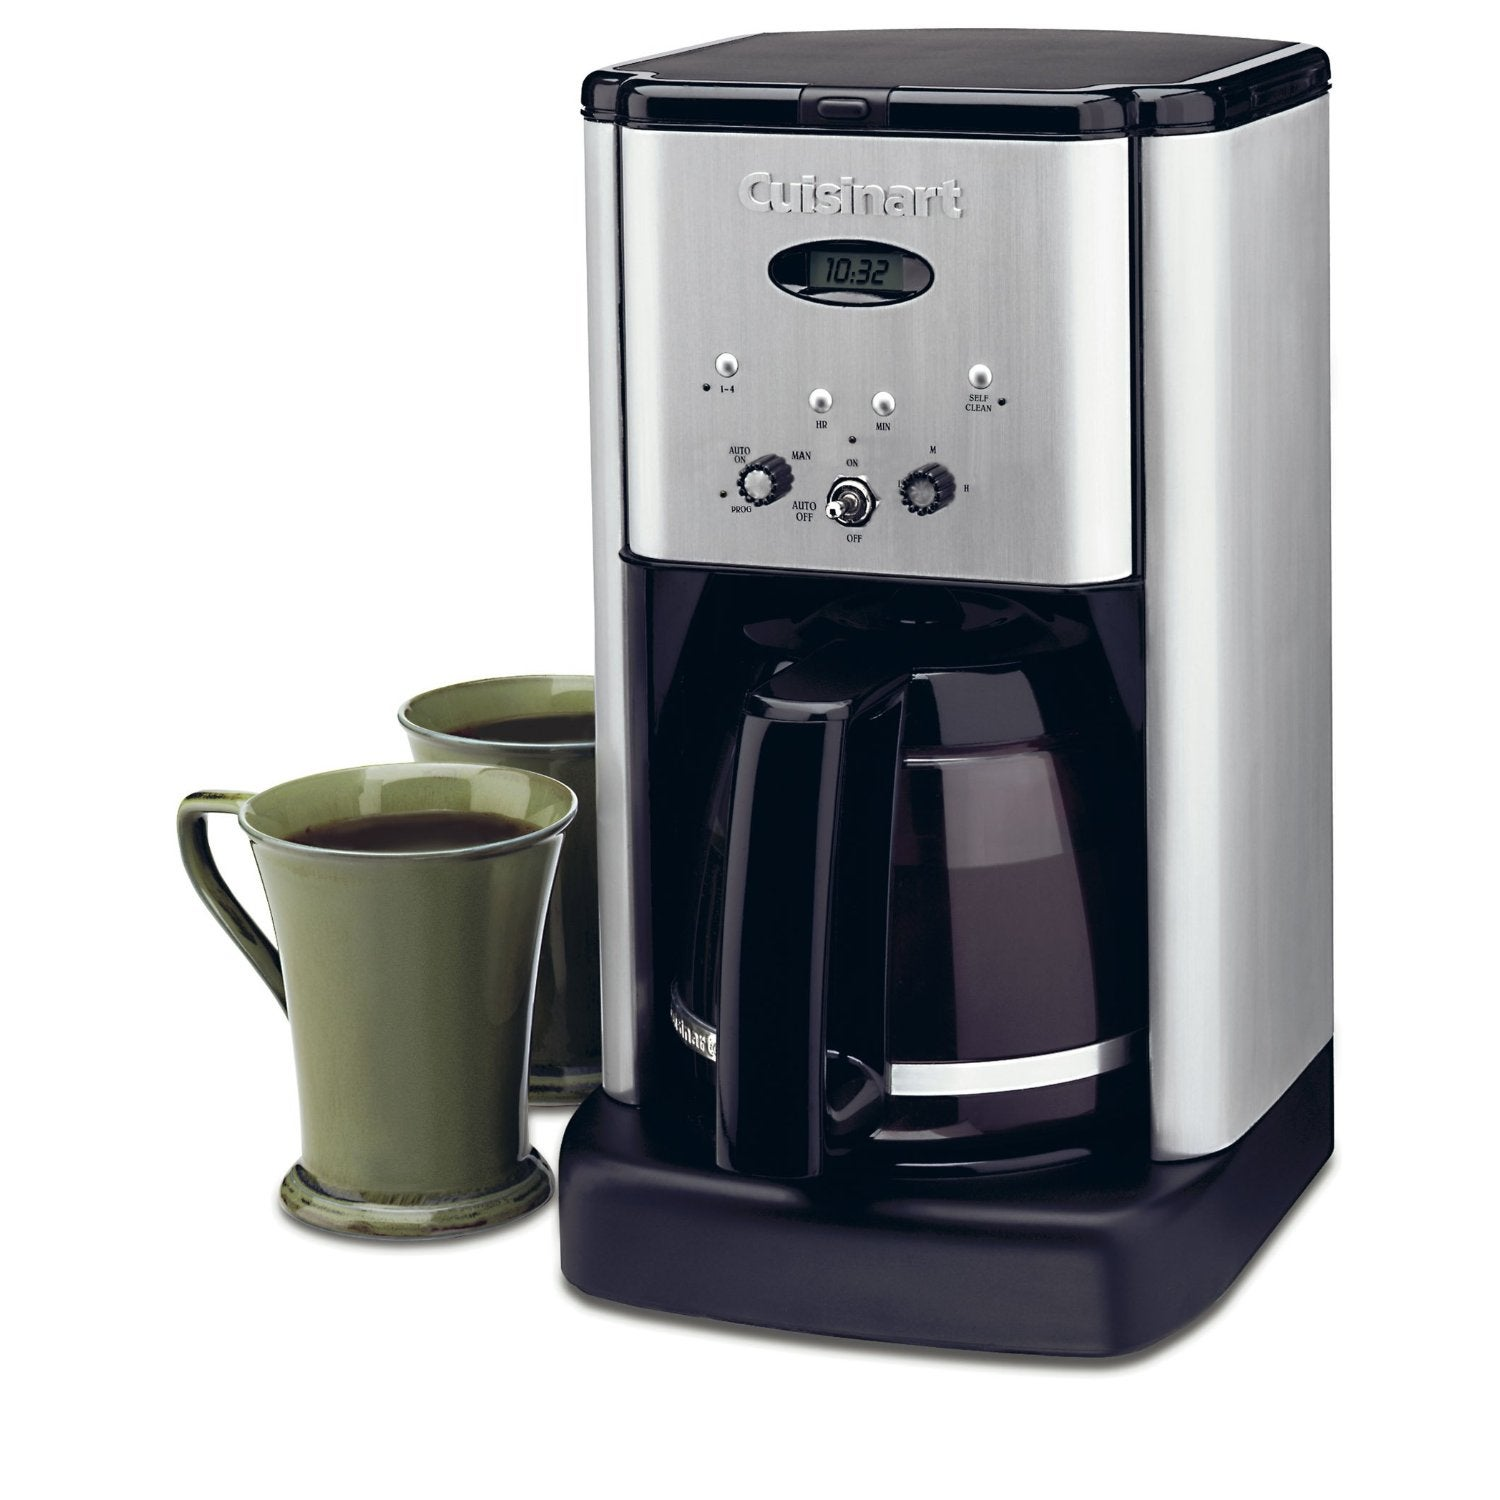 Cuisinart DCC-1200 12-cup Brew Central Programmable Coffeemaker